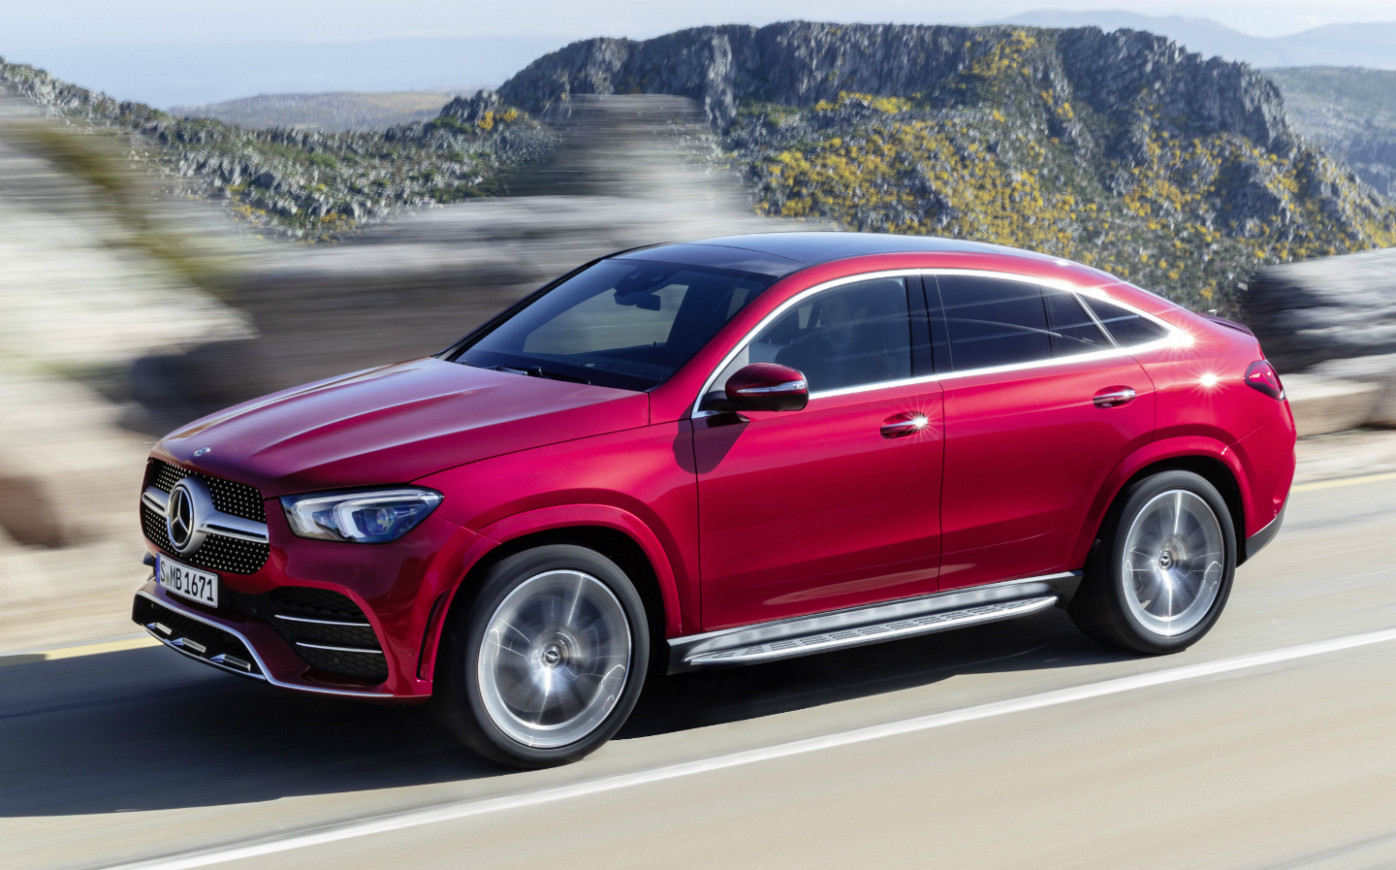 11 Mercedes-Benz GLE Coupé: prices, space, engines, tech, rivals ..